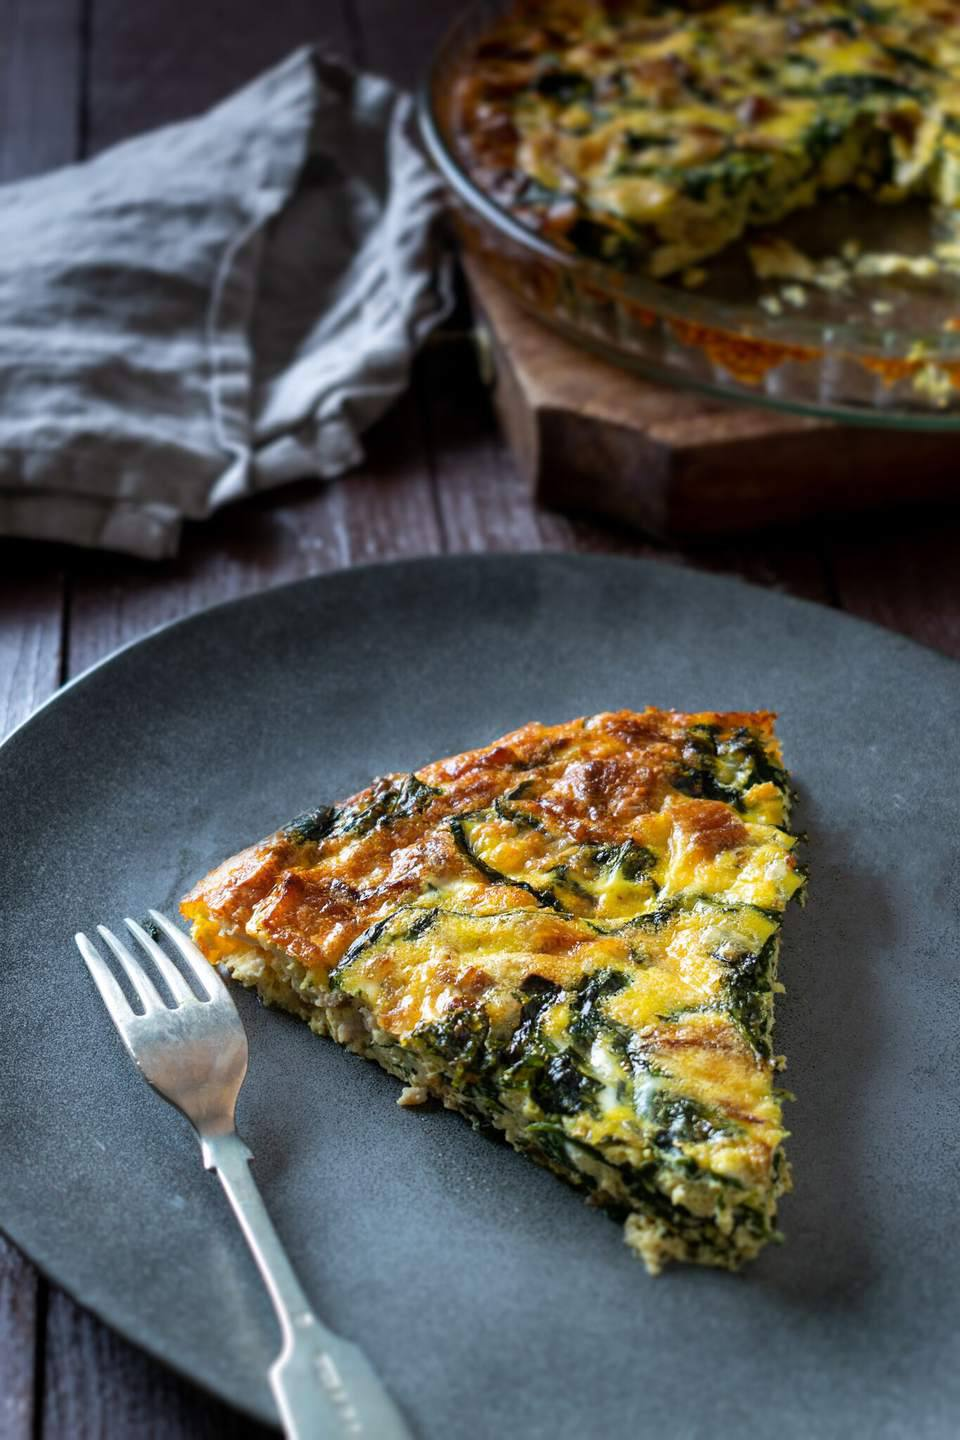 Spinach Frittata With Bacon and Cheddar